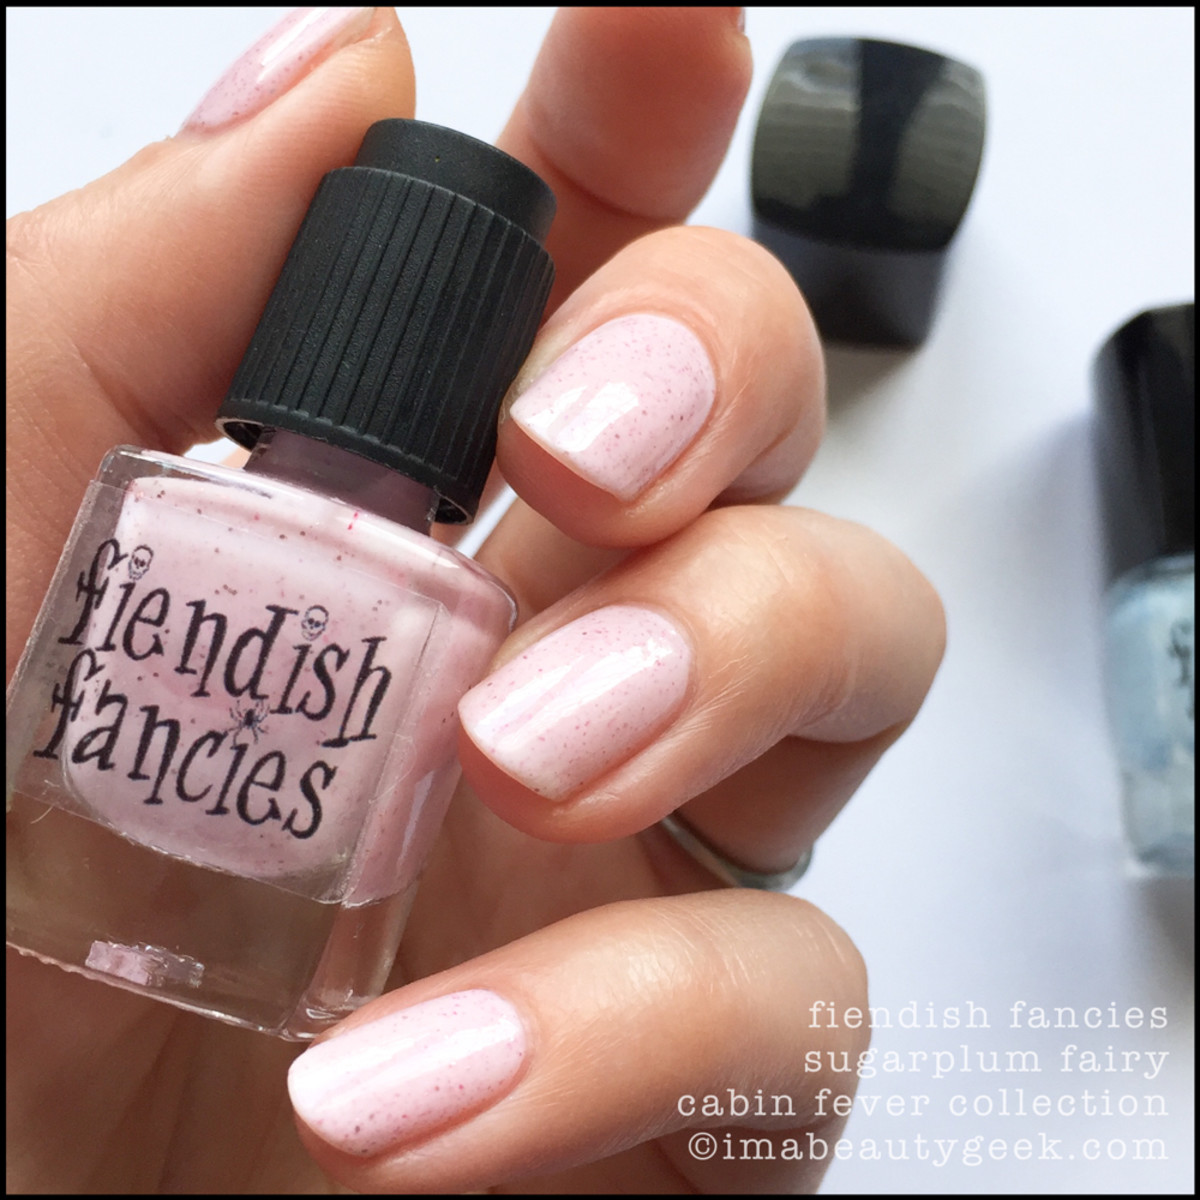 Fiendish Fancies Sugarplum Fairy_Fiendish Fancies Cabin Fever Collection Swatches